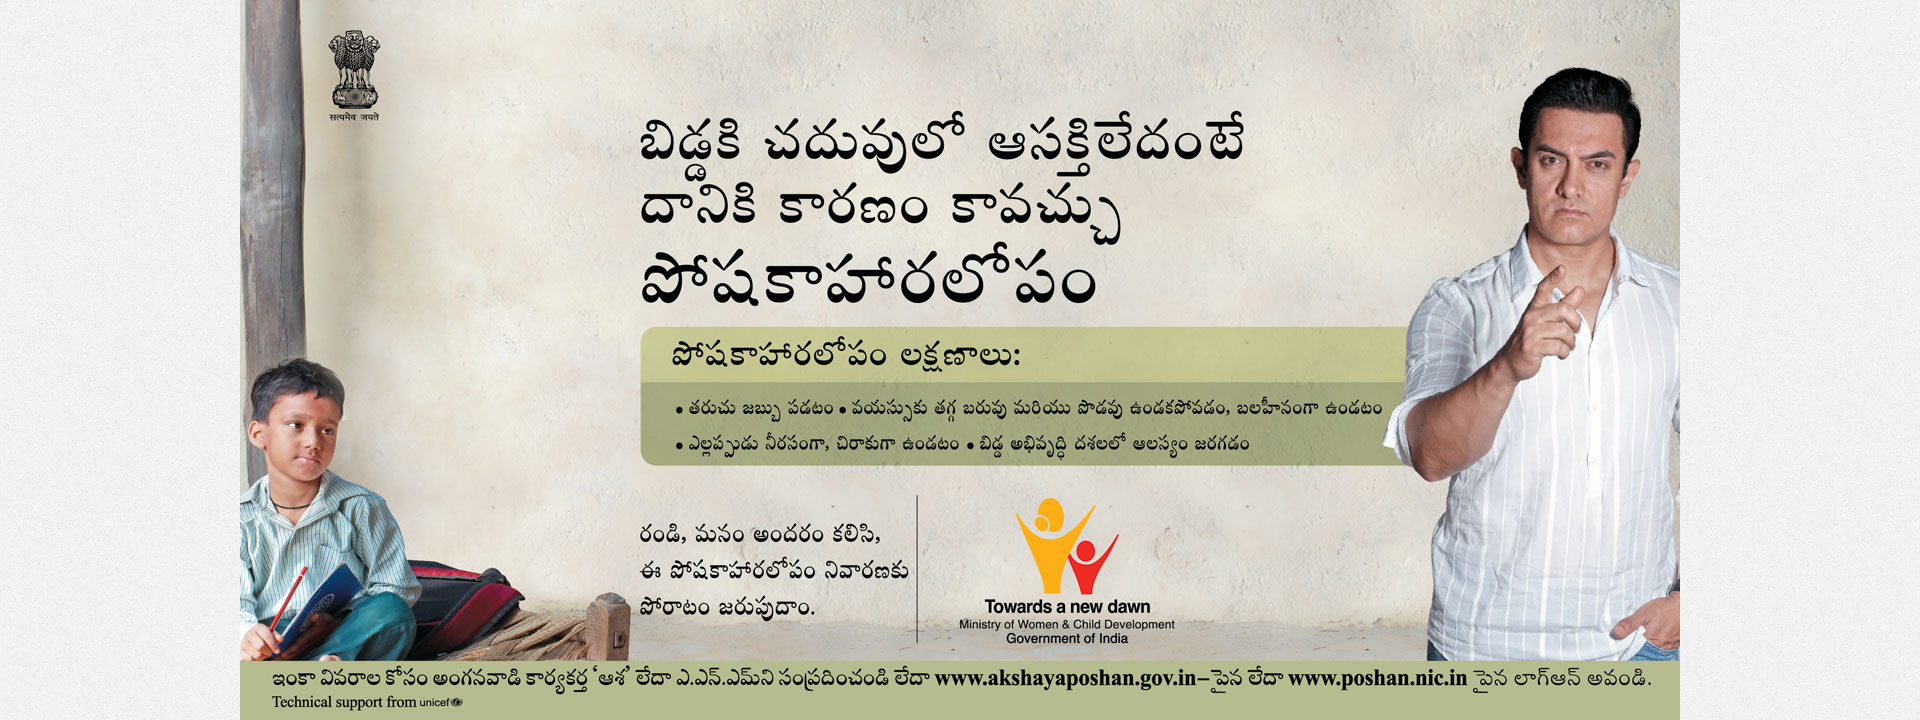 importance of education essay in telugu  importance of education essay in telugu